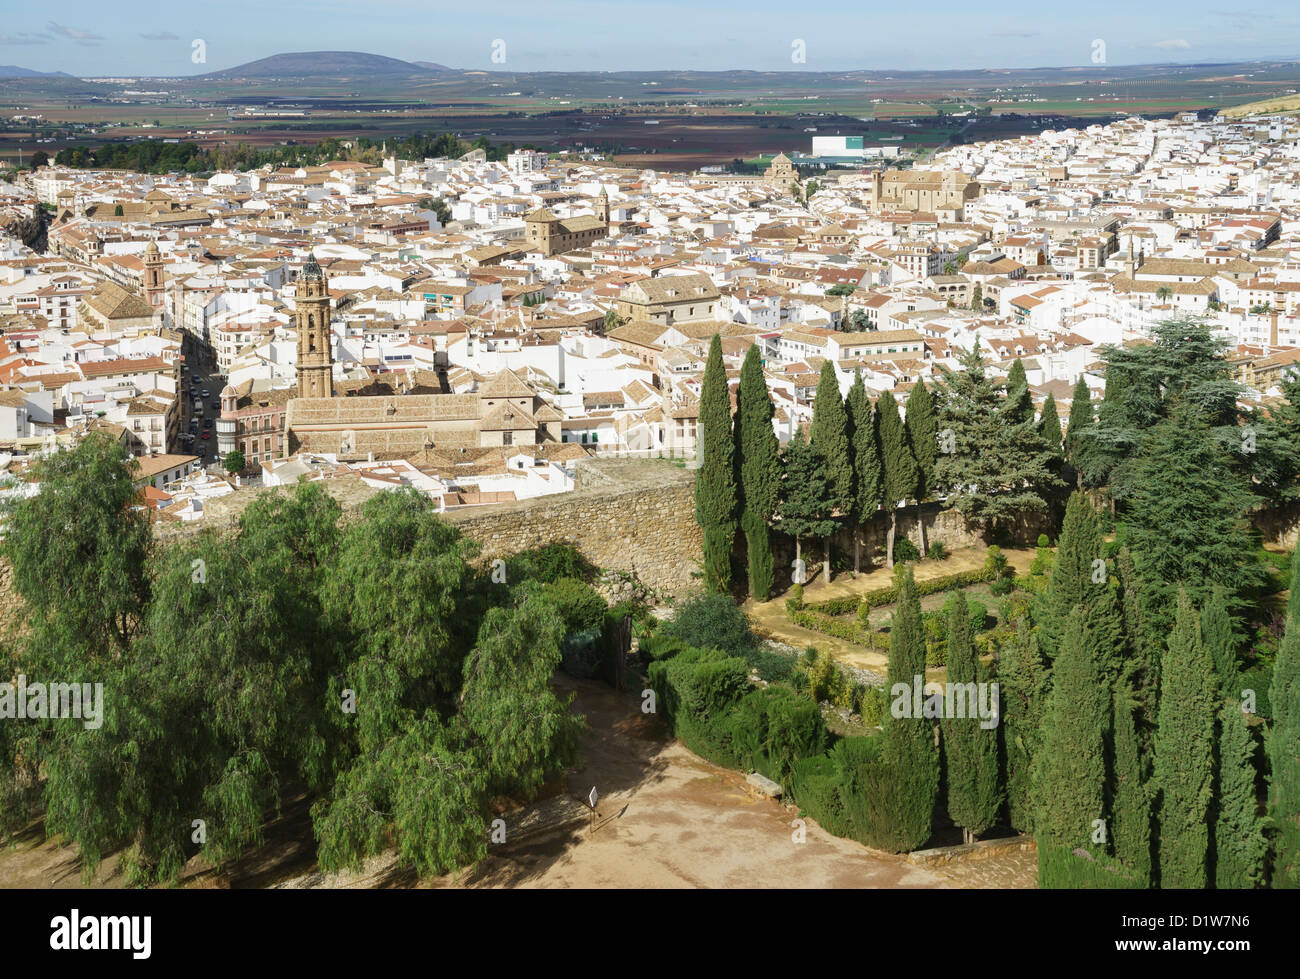 Spain, Andalucia - Antequera. The town from the the Alcazaba castle. - Stock Image